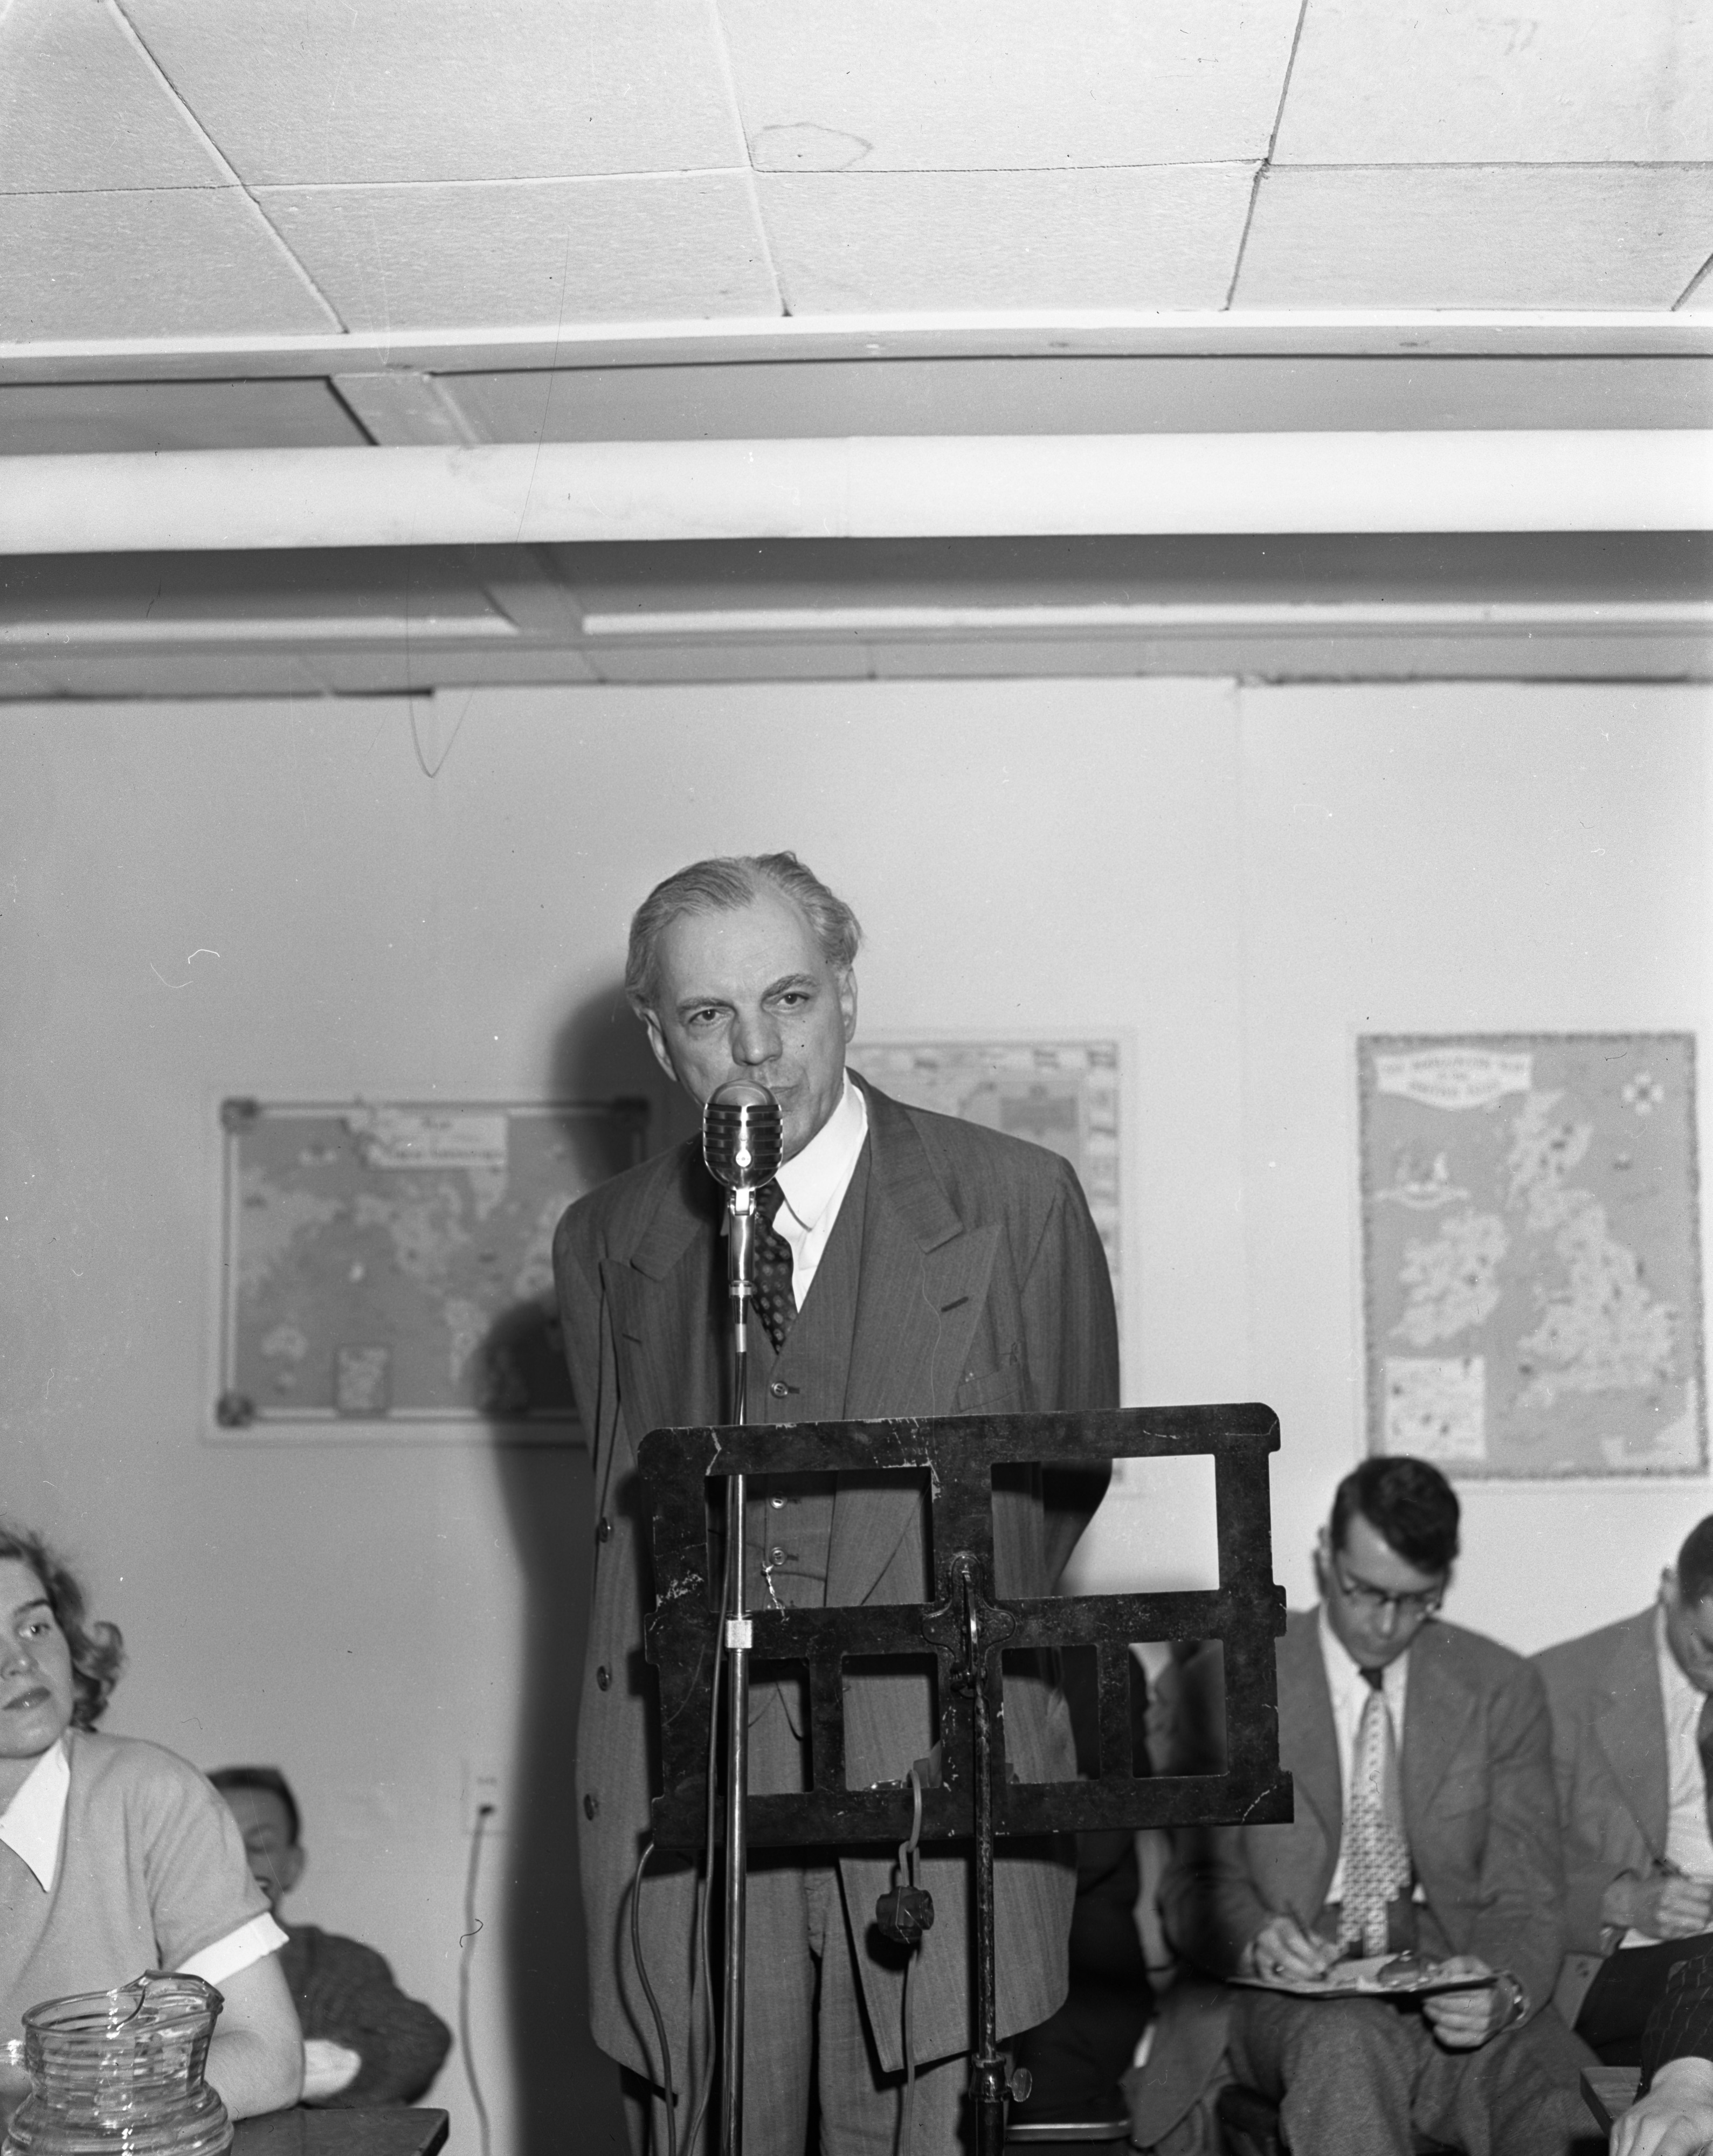 Professor Preston W. Slosson at debate on Communism versus Capitalism, April 27, 1950 image